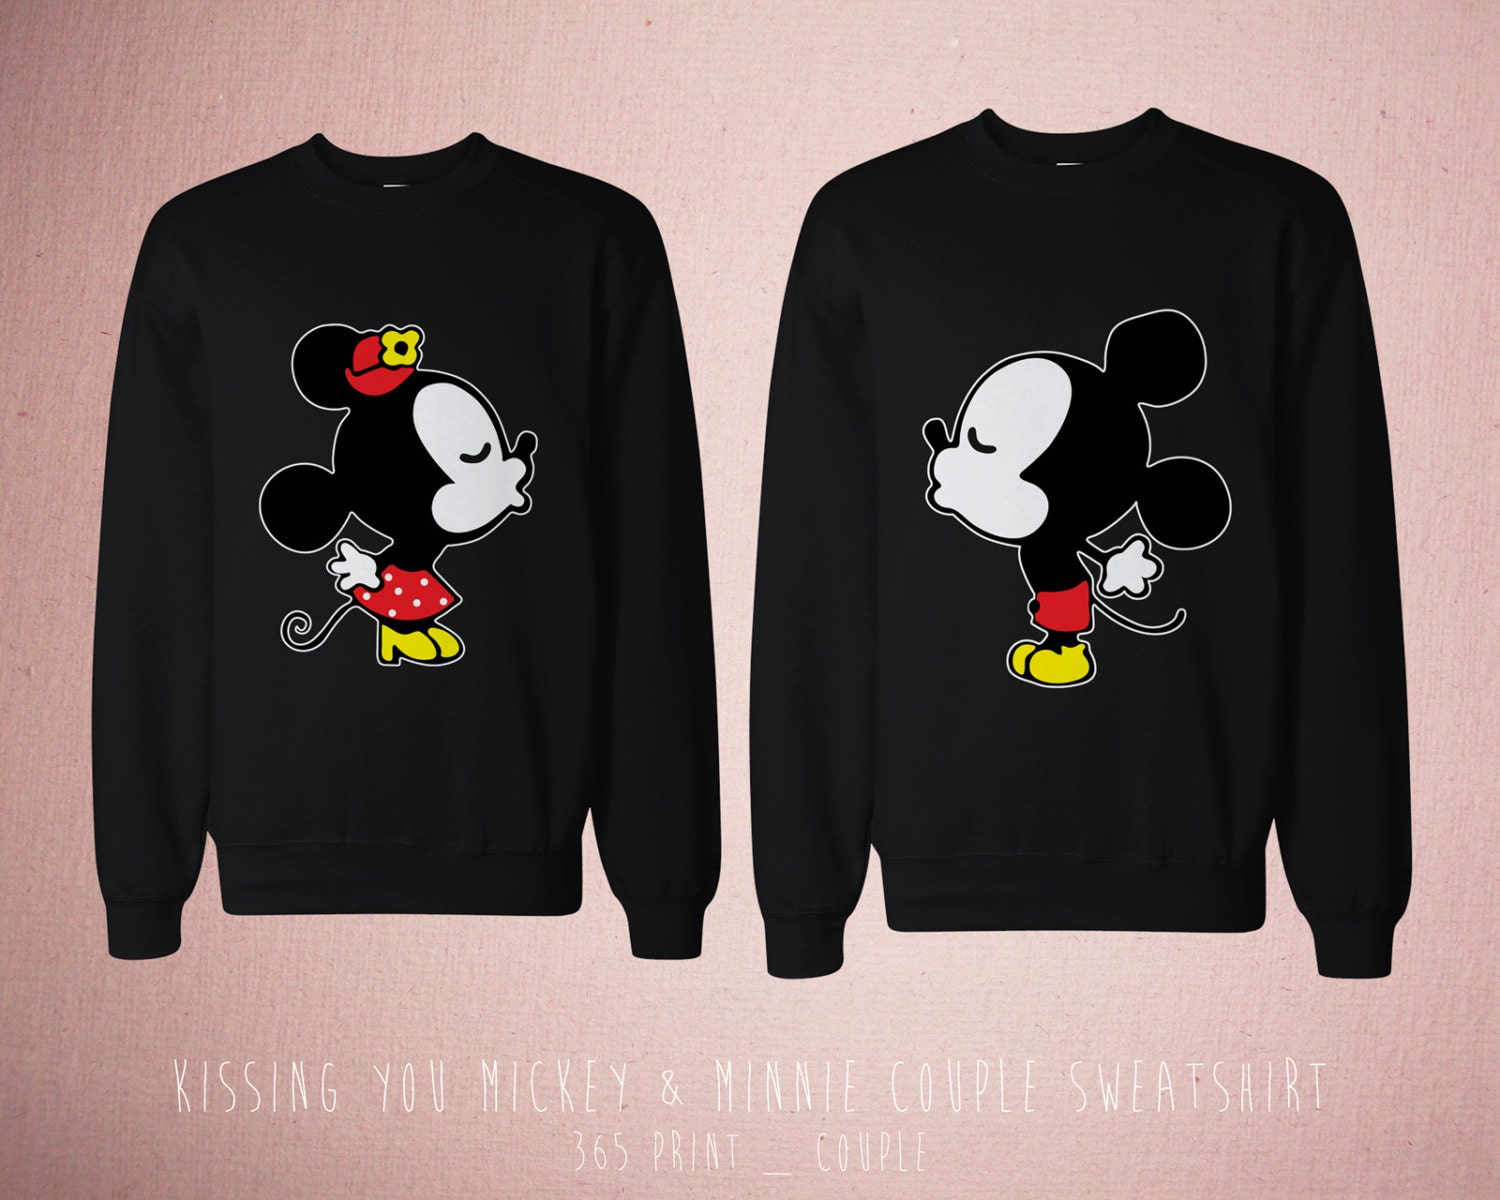 Disney Shirts For Family Matching/Matching Disney Shirts/Disney Vacation Shirts/Minnie Ears/Mommy Daddy Trip Red Black White Minnie Mouse Mickey Mouse out of 5 stars 3. $ HIS DOE HER BUCK T-SHIRTS VALENTINES LOVE Cute Matching Couples Shirts out of 5 stars $ - $ Reviews: